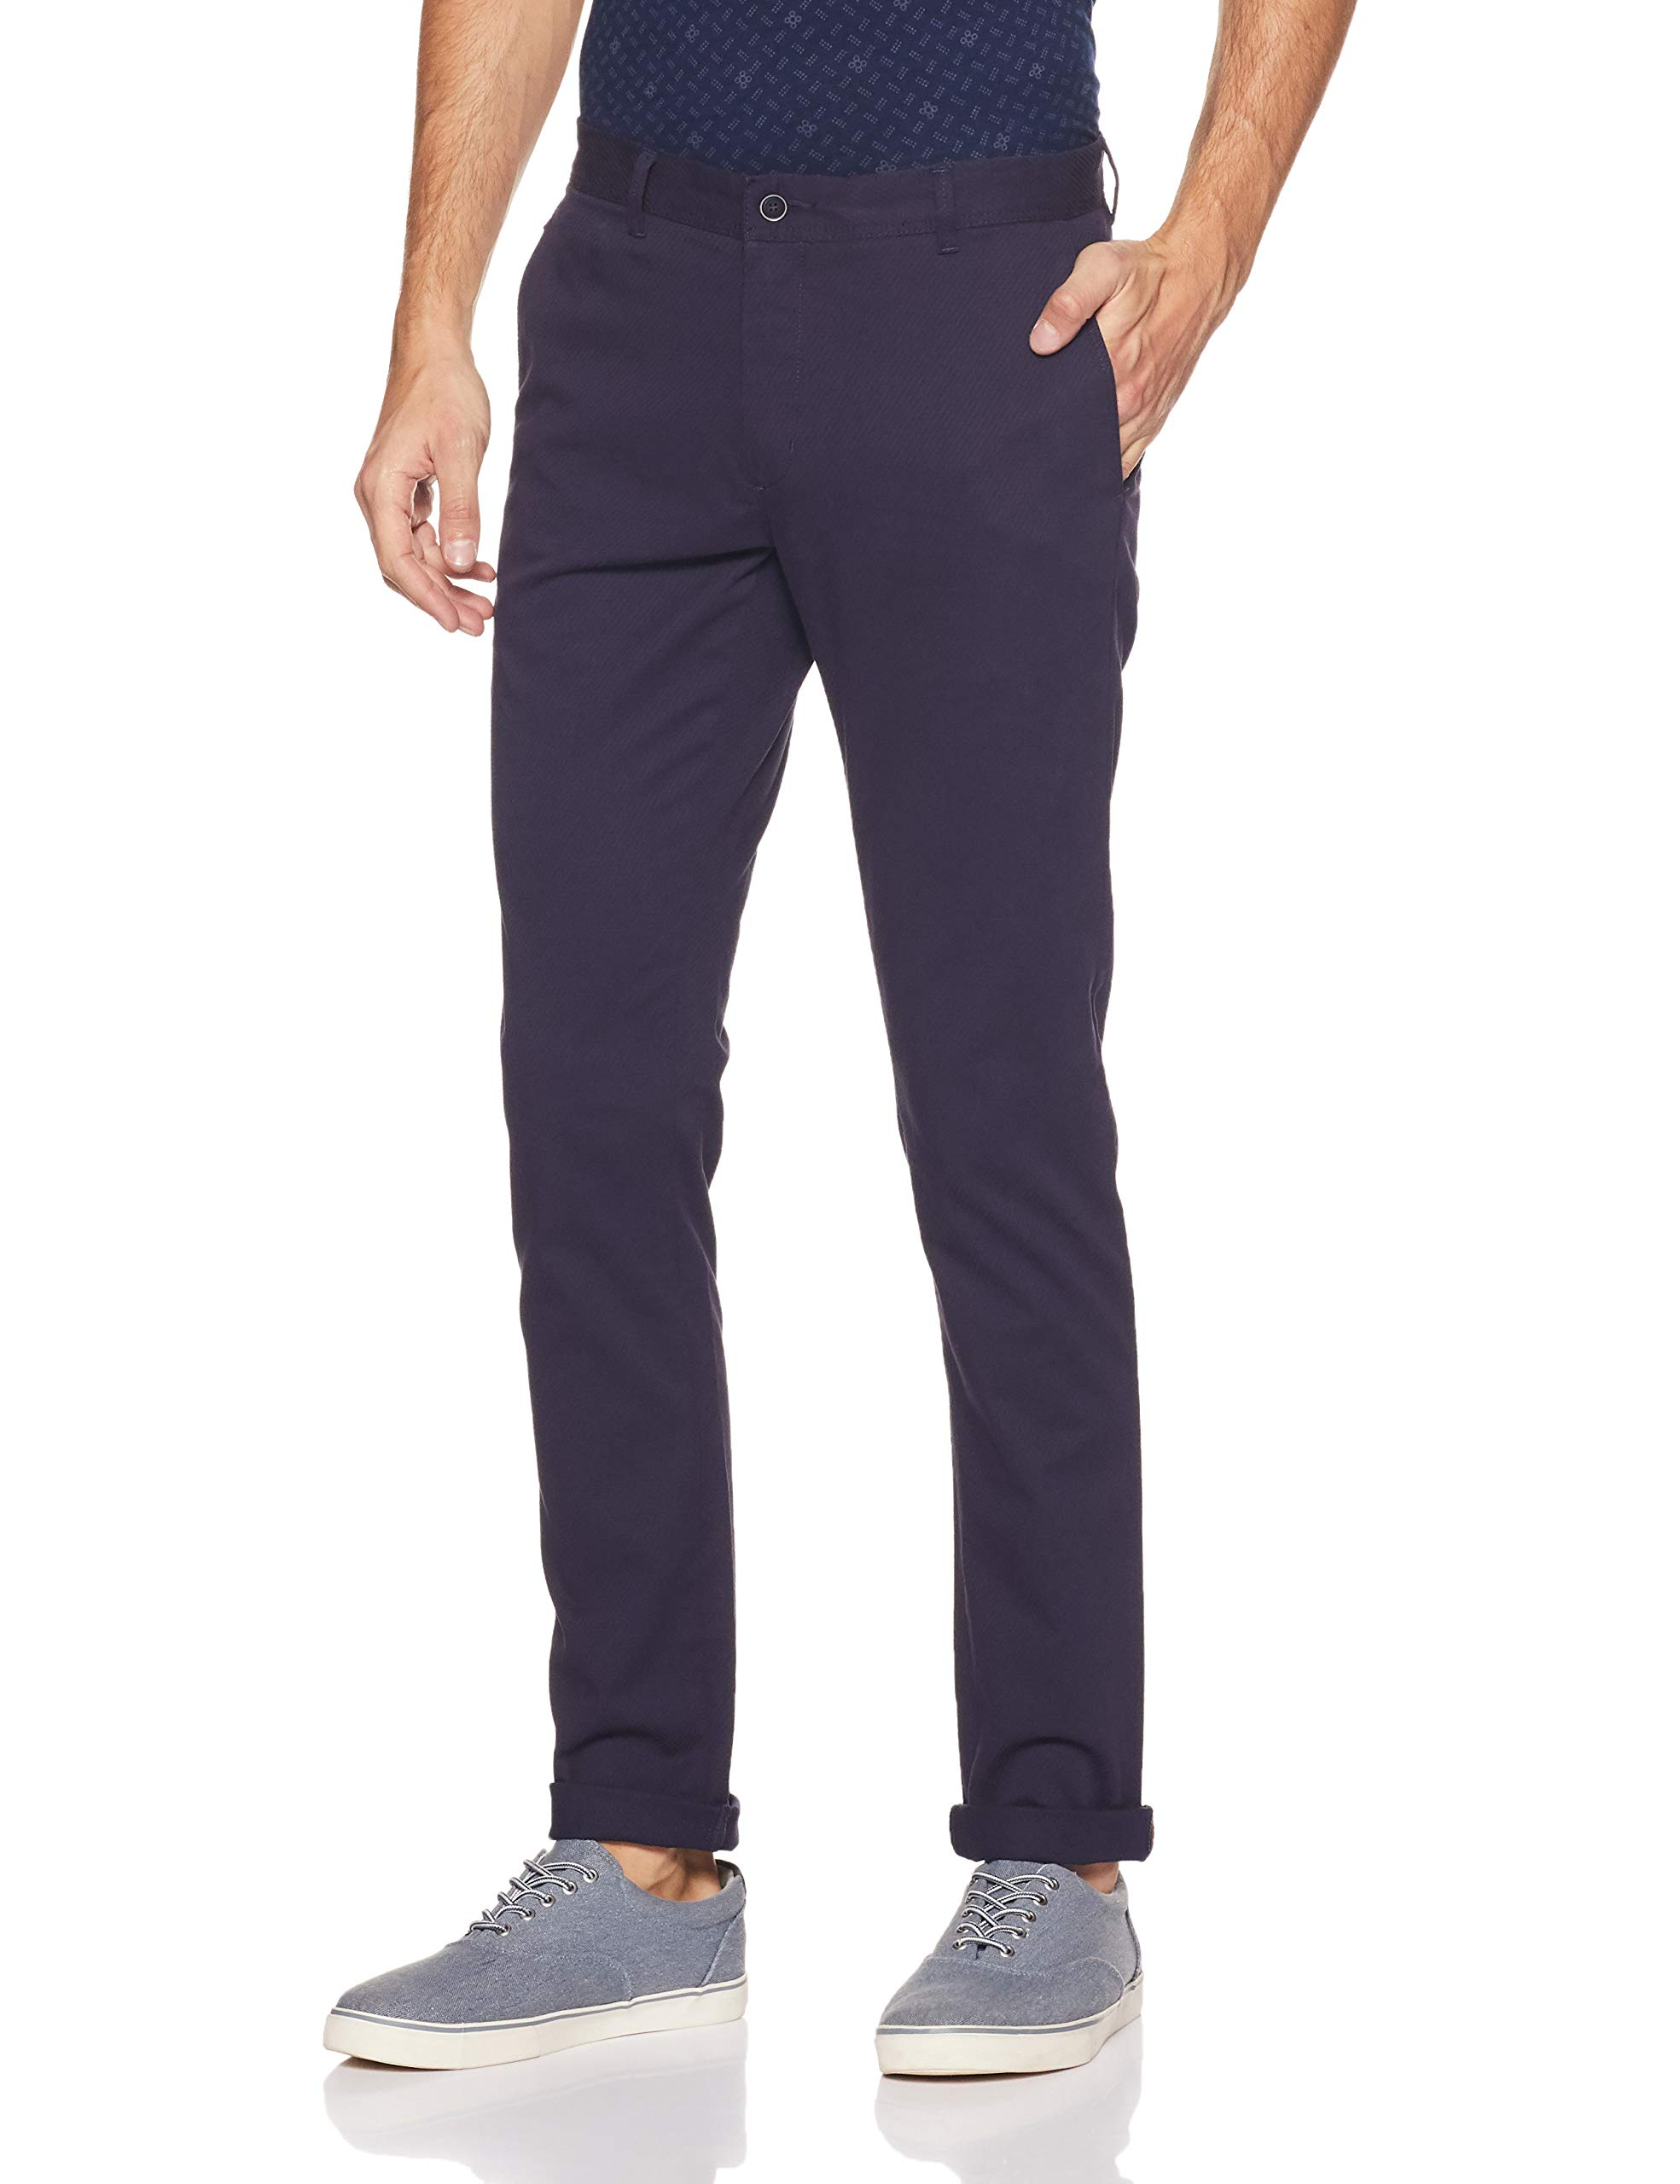 blackberrys-Mens-Chino-Casual-Trousers